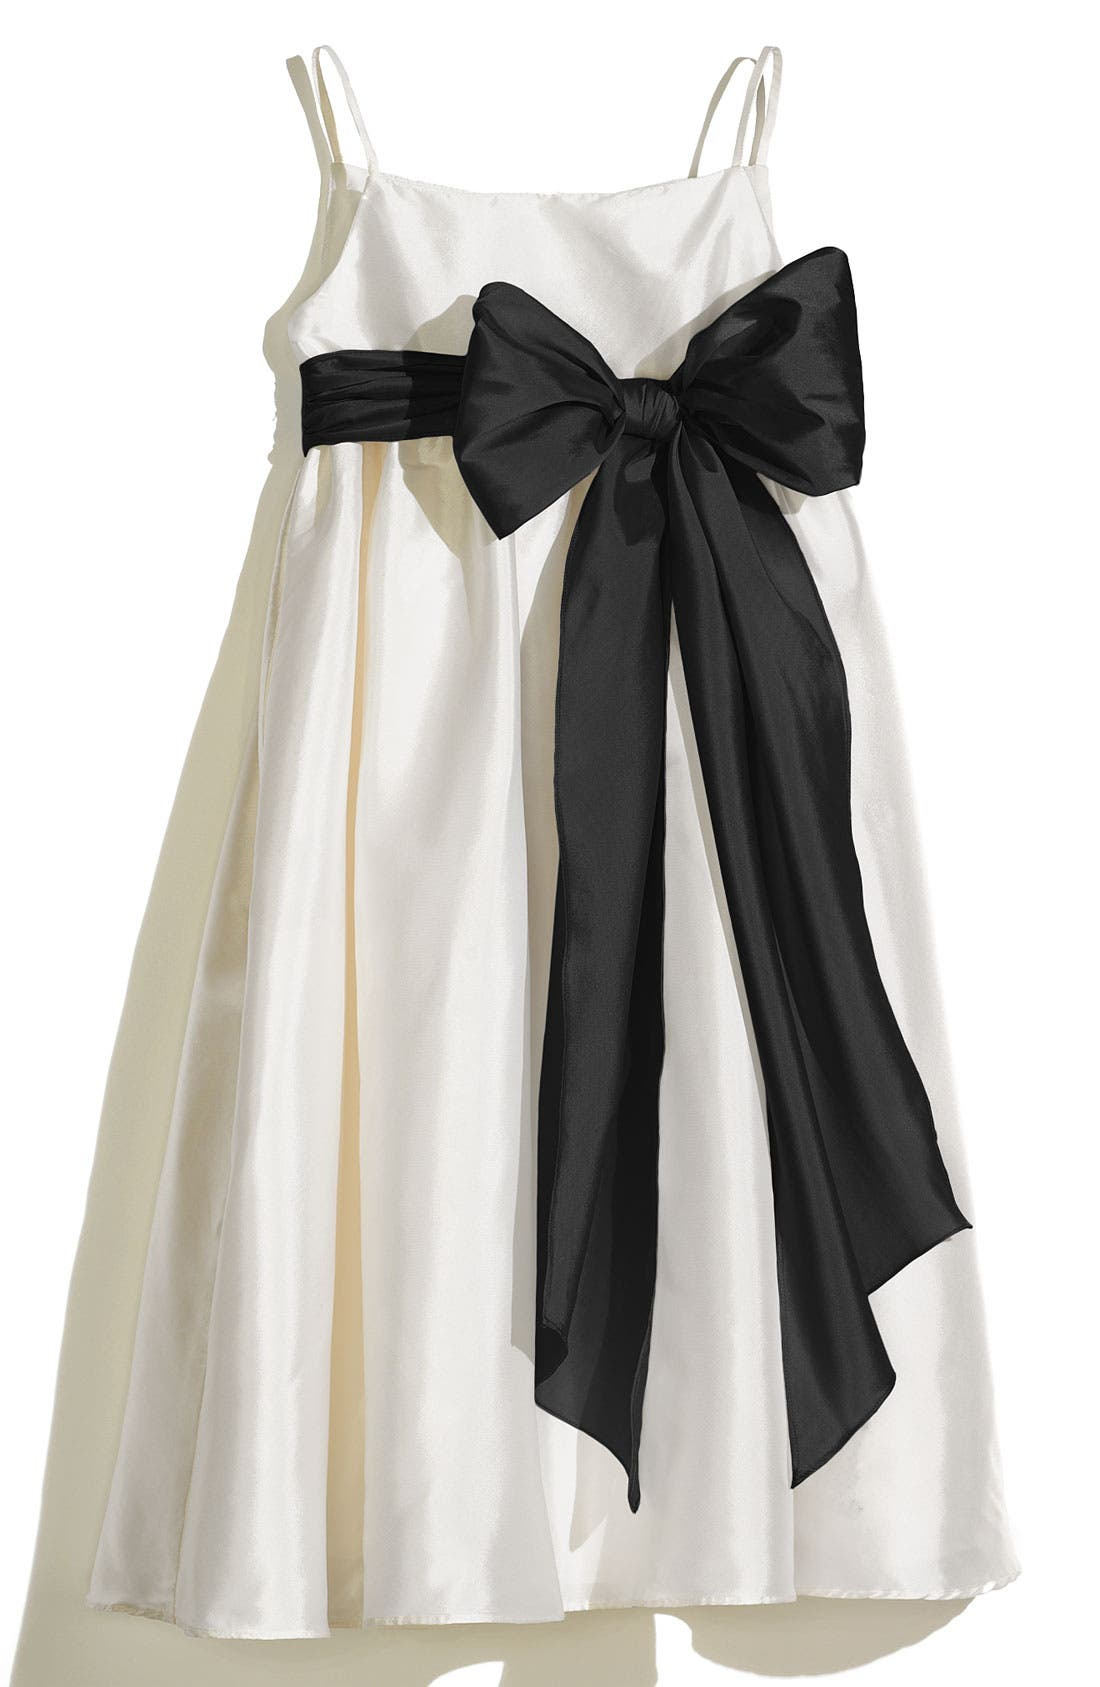 A-Line Dress with Sash,                         Main,                         color, IVORY/ BLACK